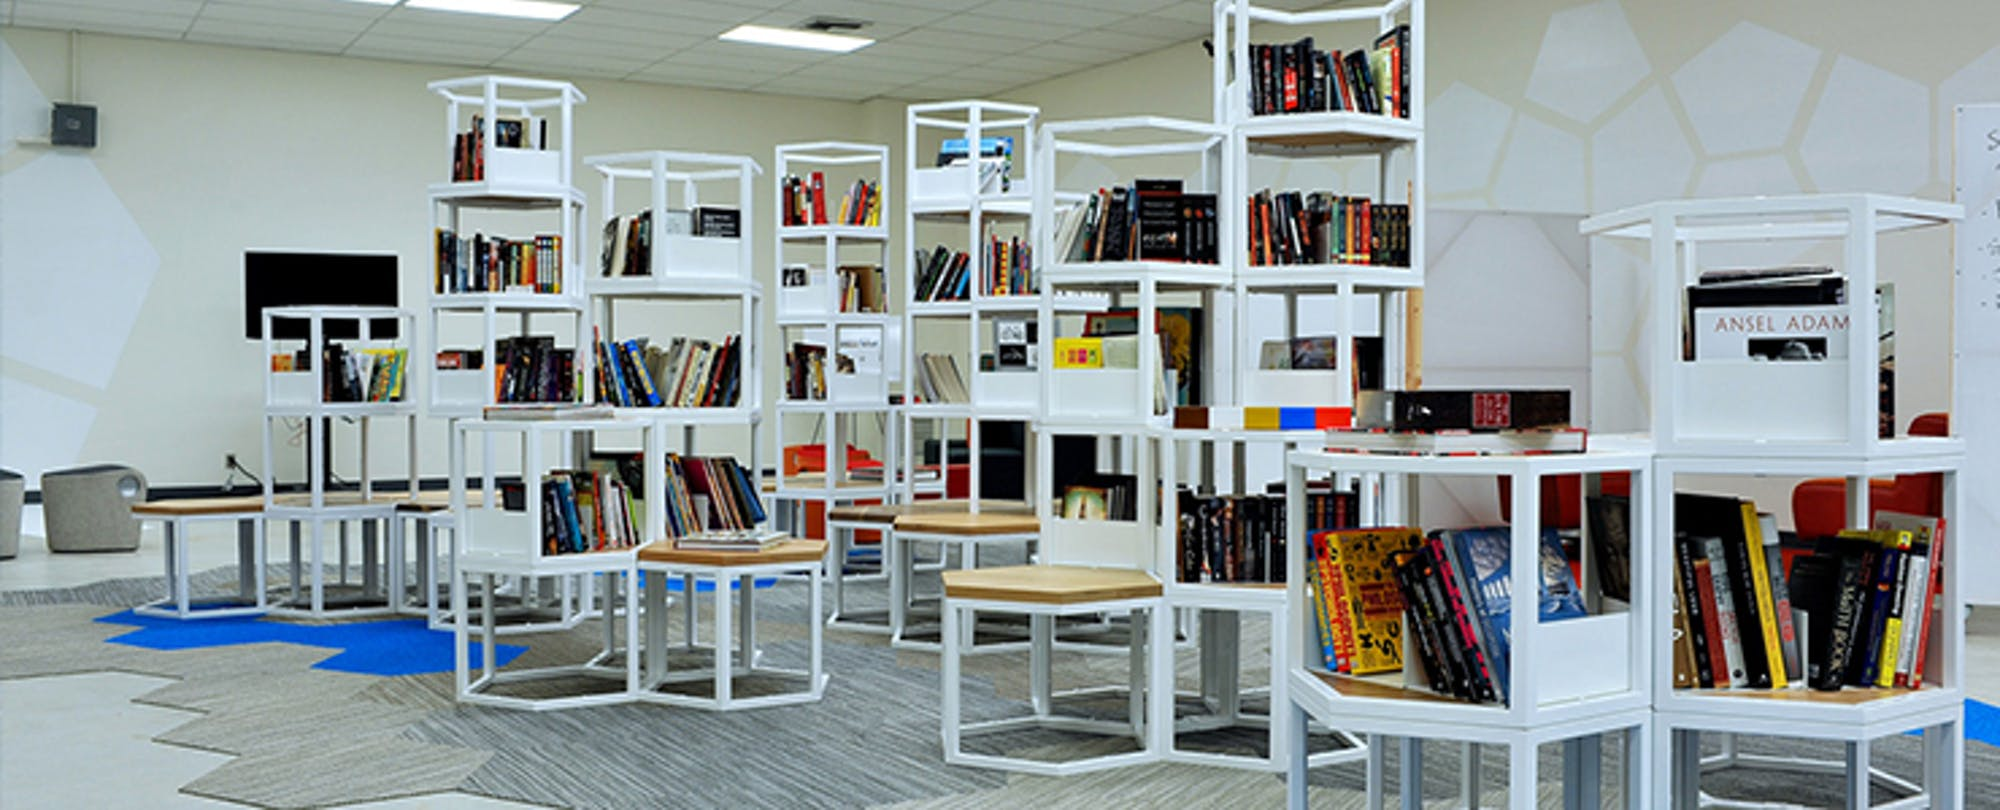 L.A. School Turnaround Sets Sights on Reinventing the Library